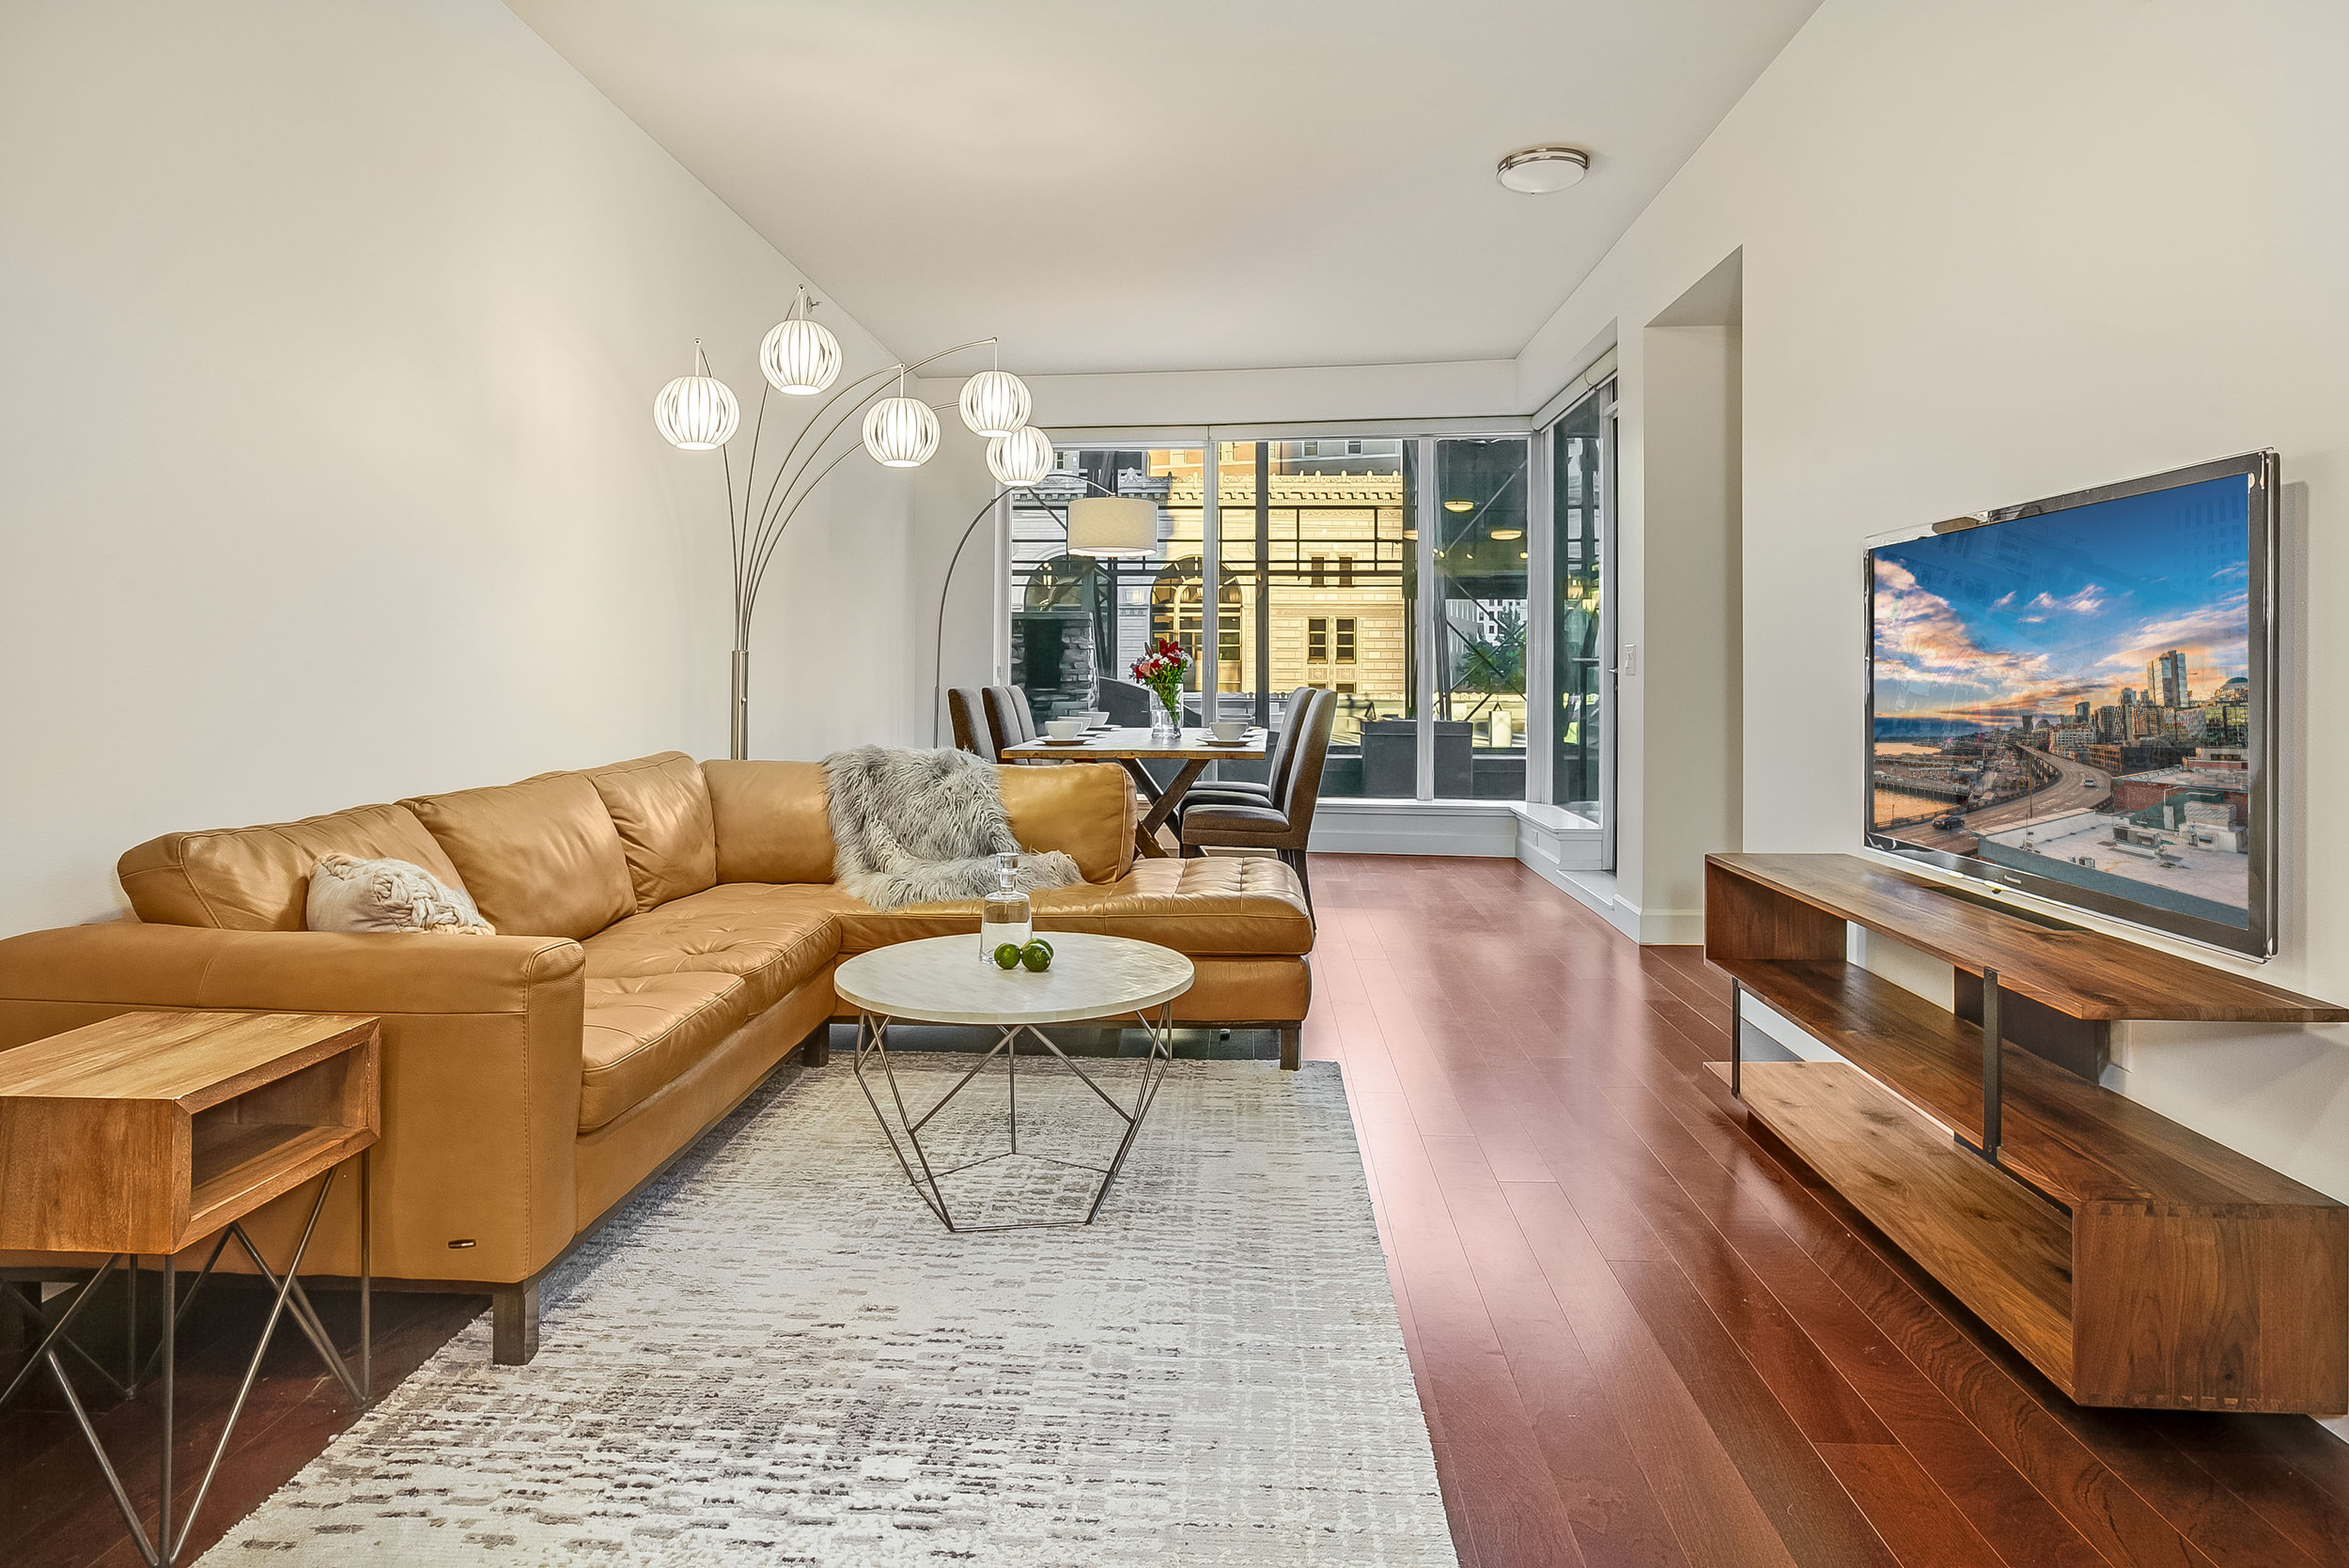 SOLD | ESCALA # 306 - 1 Bedroom, 1.5 Bathrooms, 952 Square Feet1 Parking Space, 1 Storage UnitSOLD at $675,00